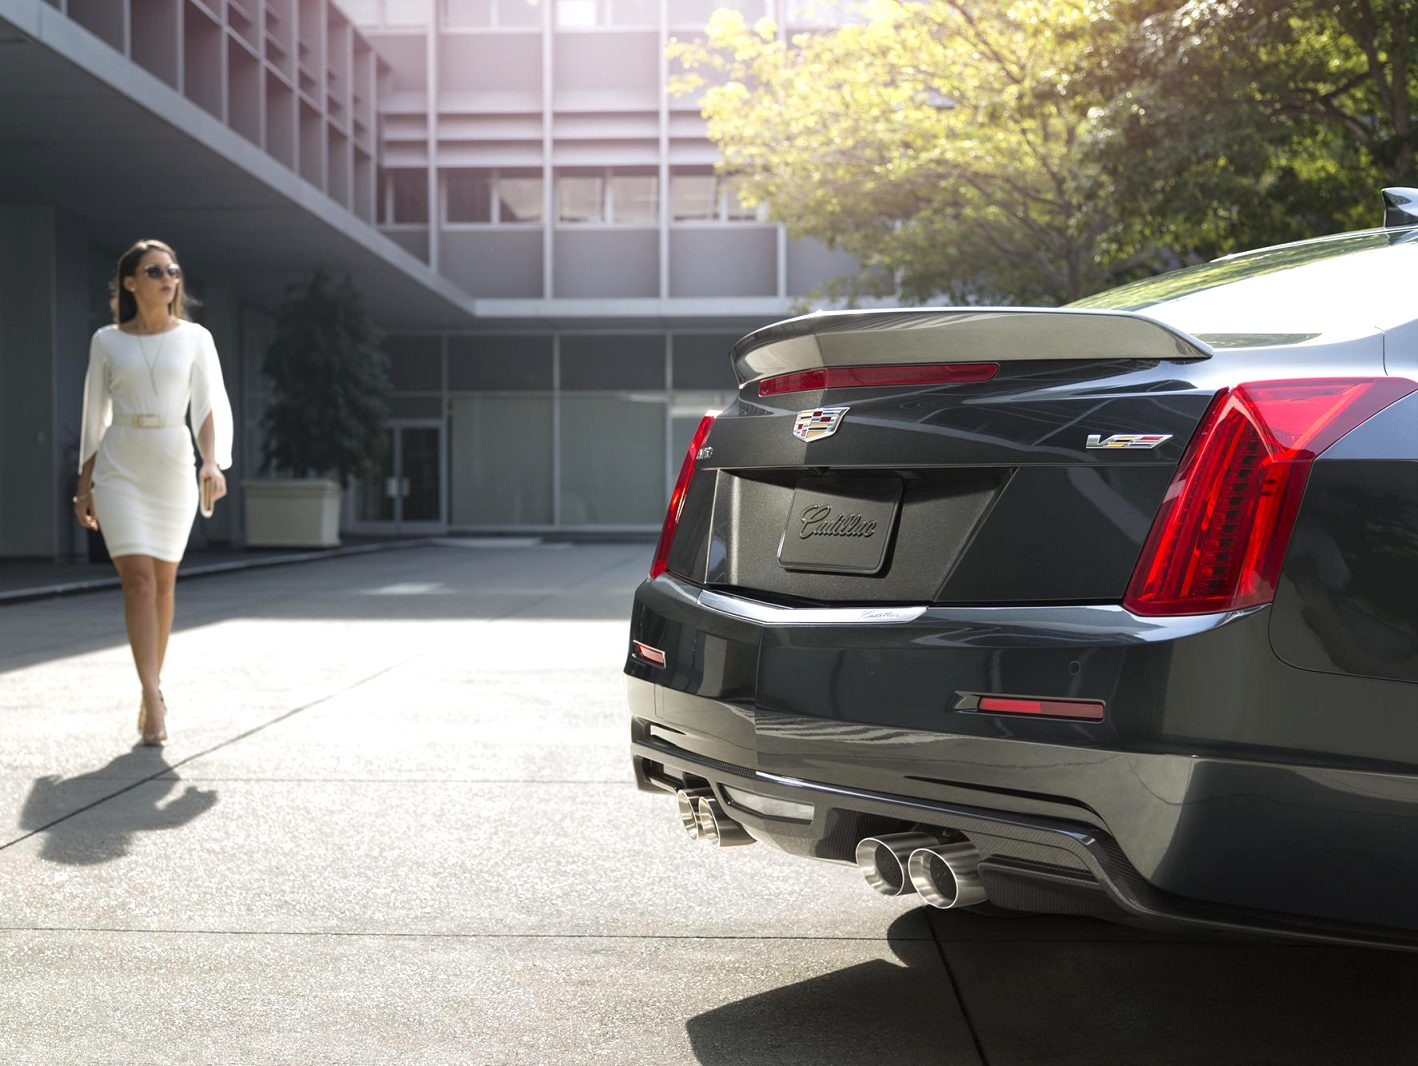 cadillac lease pull ahead 2021 Research New